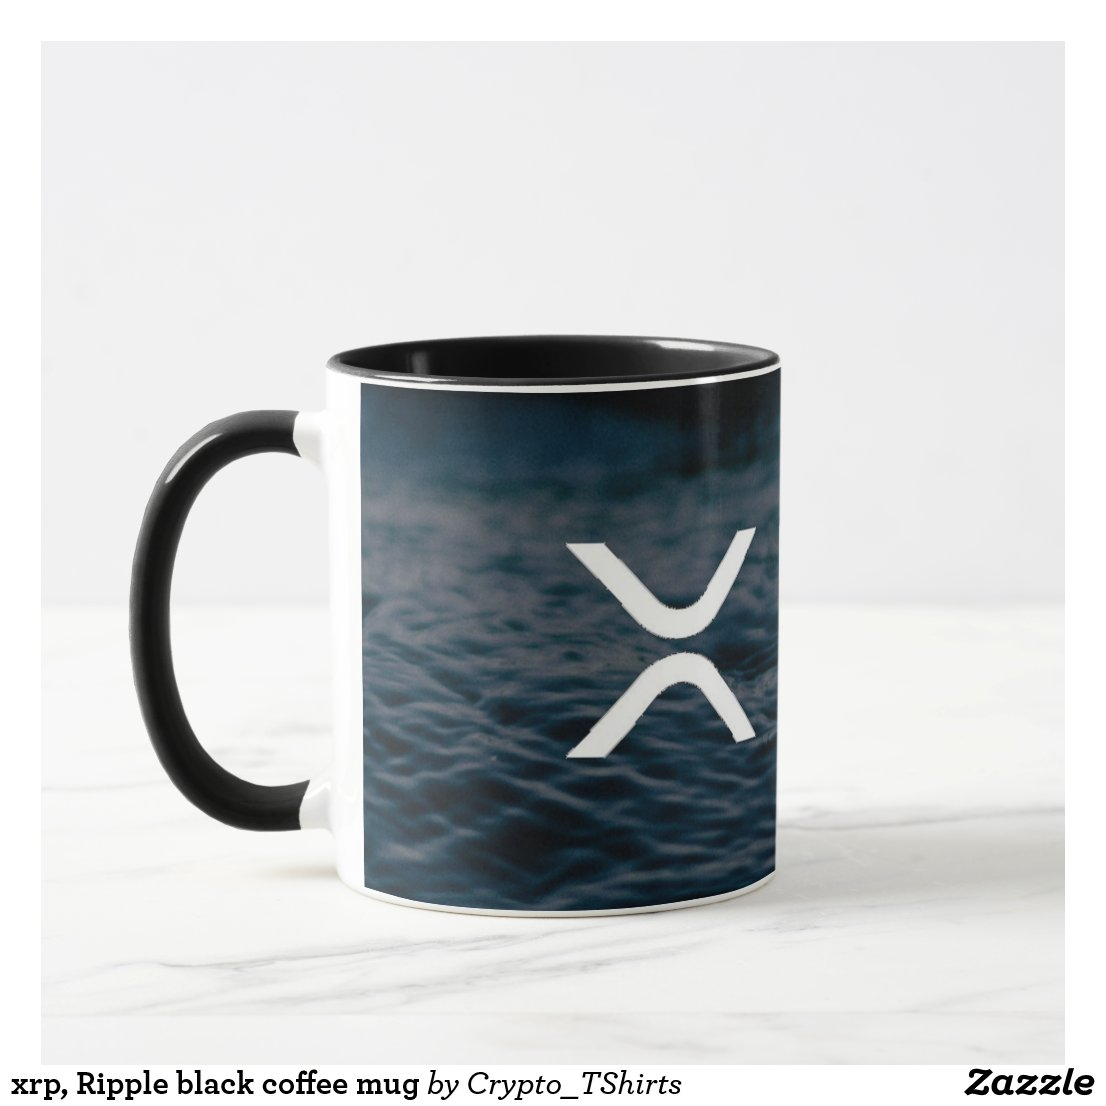 xrp, Ripple black coffee mug